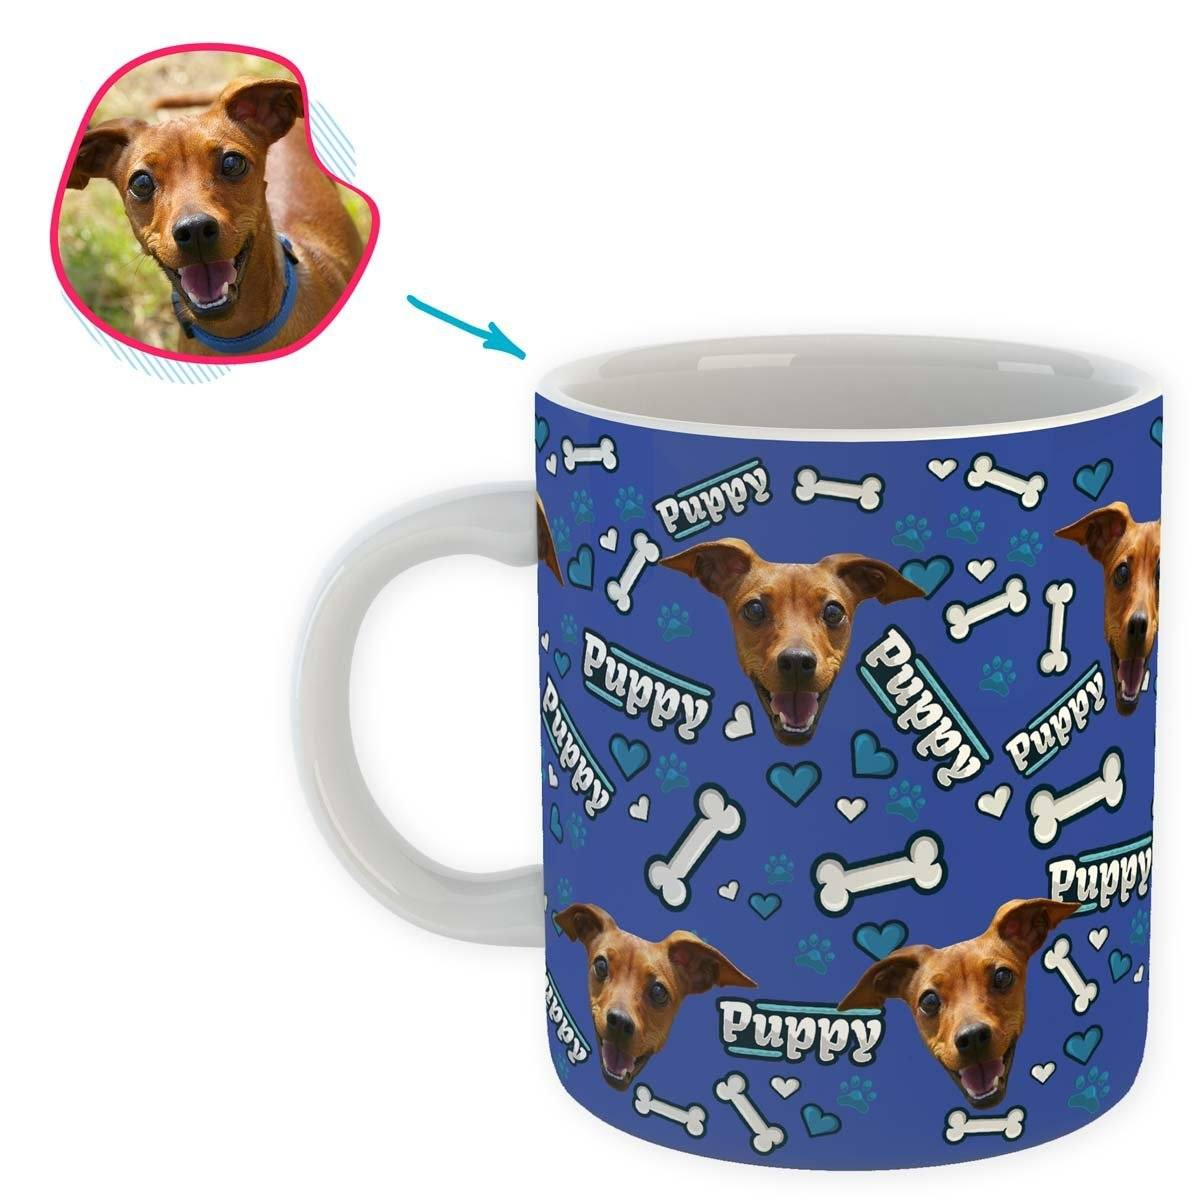 darkblue Puppy mug personalized with photo of face printed on it